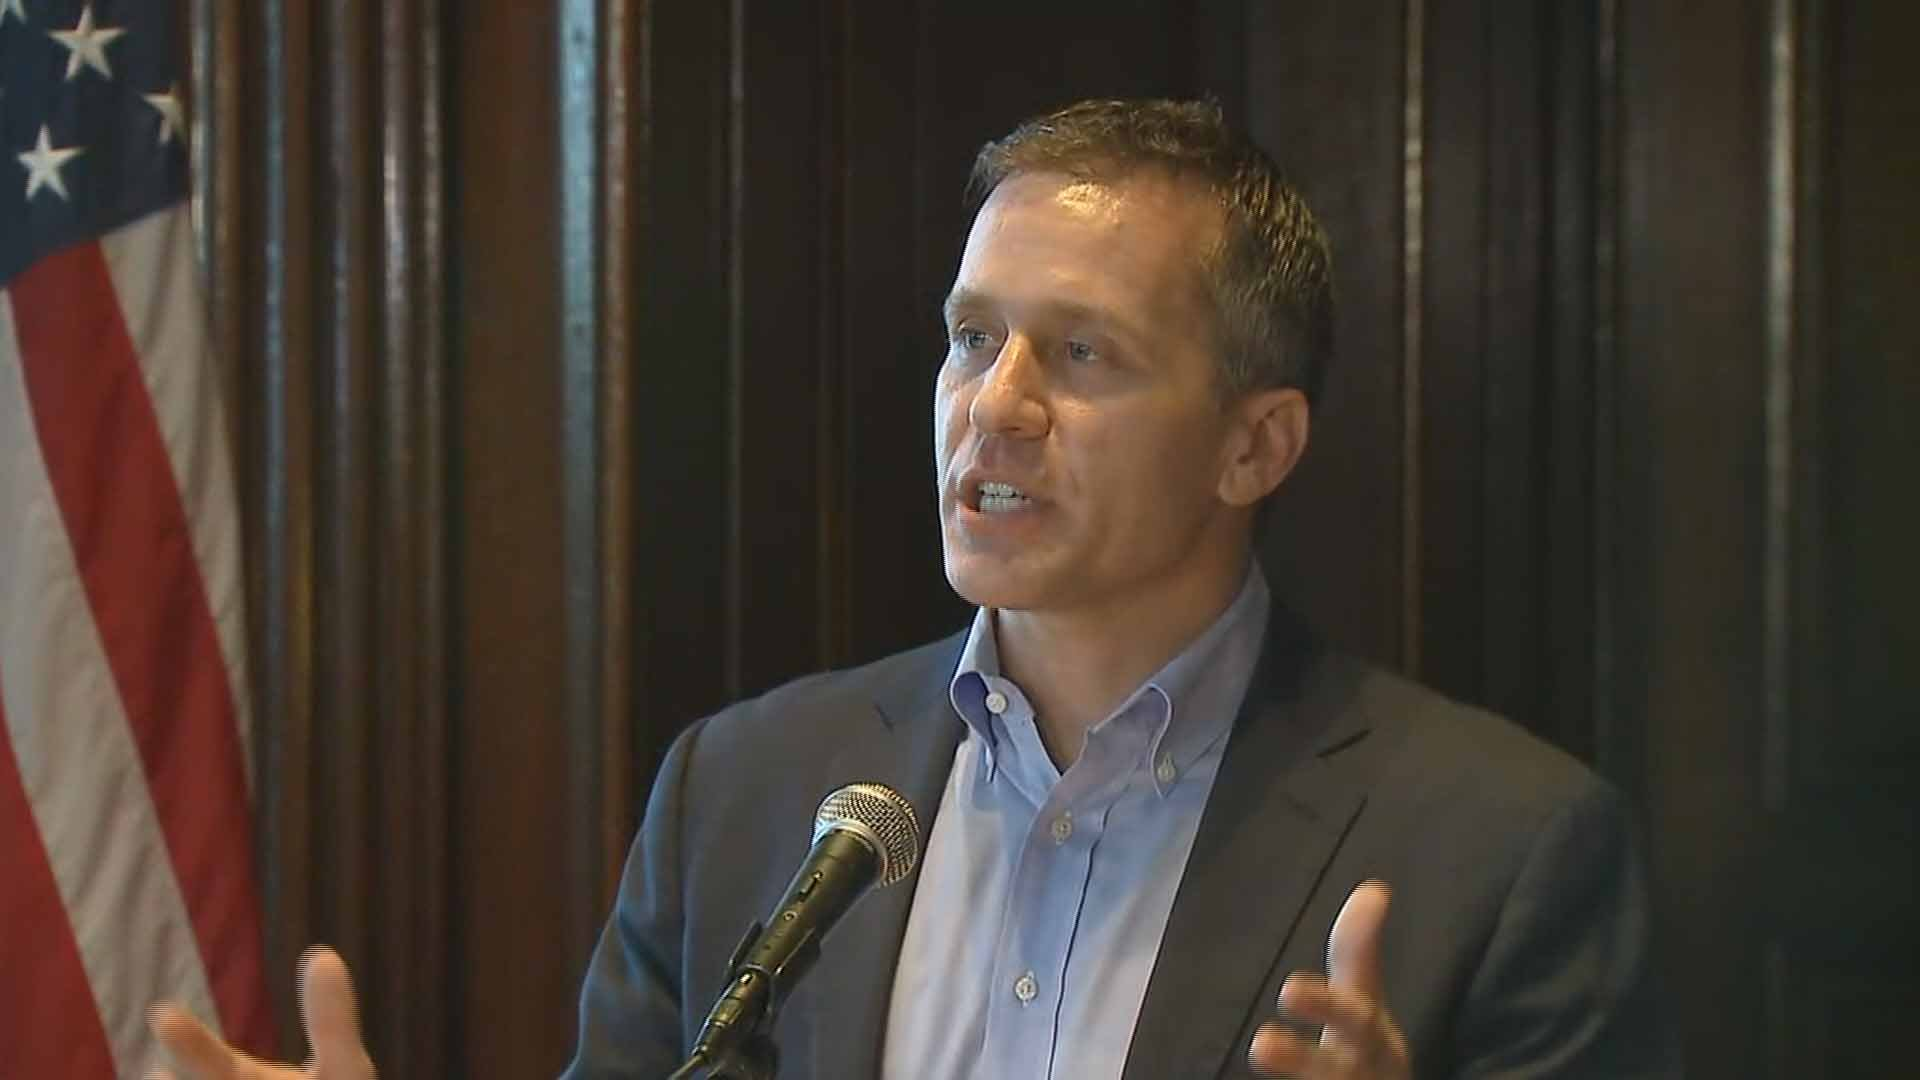 Mo. Gov. Eric Greitens announces he won't step down ahead of a report released by a legislative committee investigating him. Credit: KMOV